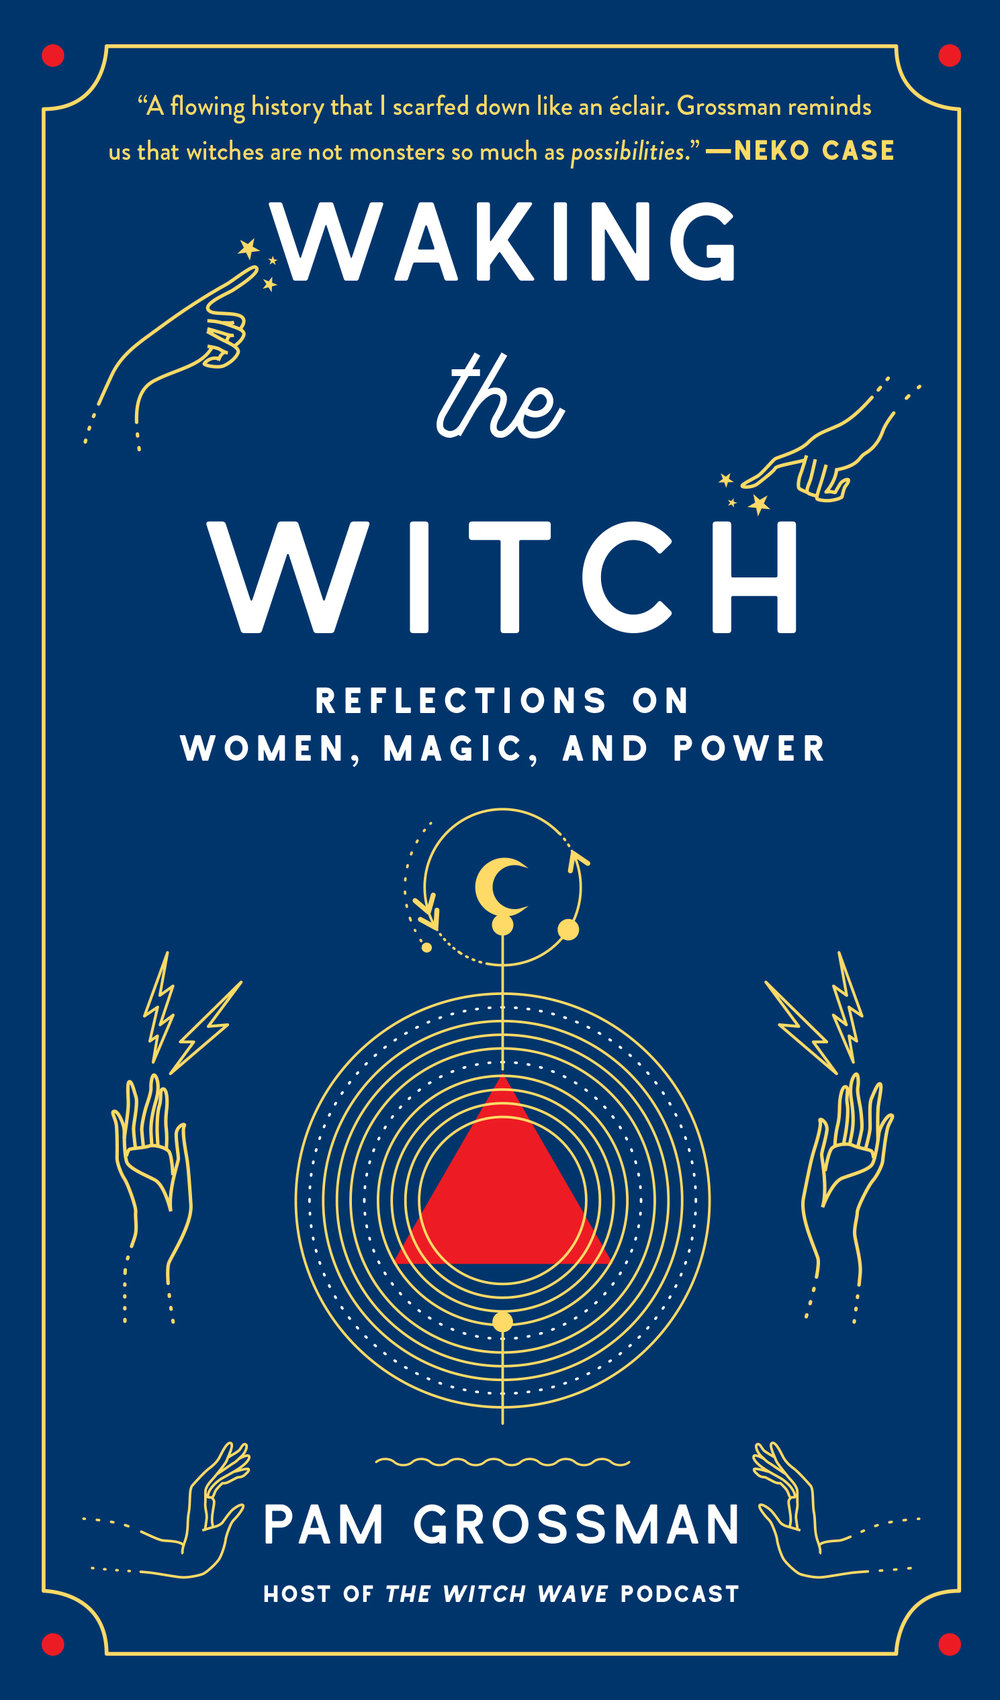 WAKING THE WITCH: REFLECTIONS ON WOMEN, MAGIC, AND POWER - Gallery Books/Simon & SchusterComing June 4, 2019PRE-ORDER HEREA whip-smart and illuminating exploration of the world's fascination with witches from podcast host and practicing witch Pam Grossman (The Witch Wave), who delves deeply into why witches have intrigued us for centuries and why they're more relevant now than ever. When you think of a witch, what do you picture? Pointy black hat, maybe a broomstick. But witches in various guises have been with us for millennia. In Waking the Witch, Pam Grossman explores the cultural and historical impact of the world's most magical icon. From the idea of the femme fatale in league with the devil in early modern Europe and Salem, to the bewitching pop culture archetypes in Buffy the Vampire Slayer, Sabrina the Teenage Witch, and Harry Potter; from the spooky ladies in fairy tales and horror films to the rise of feminist covens and contemporary witchcraft, witches reflect the power and potential of women.In this fascinating read that is part cultural analysis, part memoir, Pam opens up about her own journey on the path to witchcraft, and how her personal embrace of the witch helped her find strength, self-empowerment, and a deeper purpose. A comprehensive meditation on one of the most mysterious and captivating figures of all time, Waking the Witch celebrates witches past, present, and future, and reveals the critical role they have played—and will continue to play—in shaping the world as we know it.